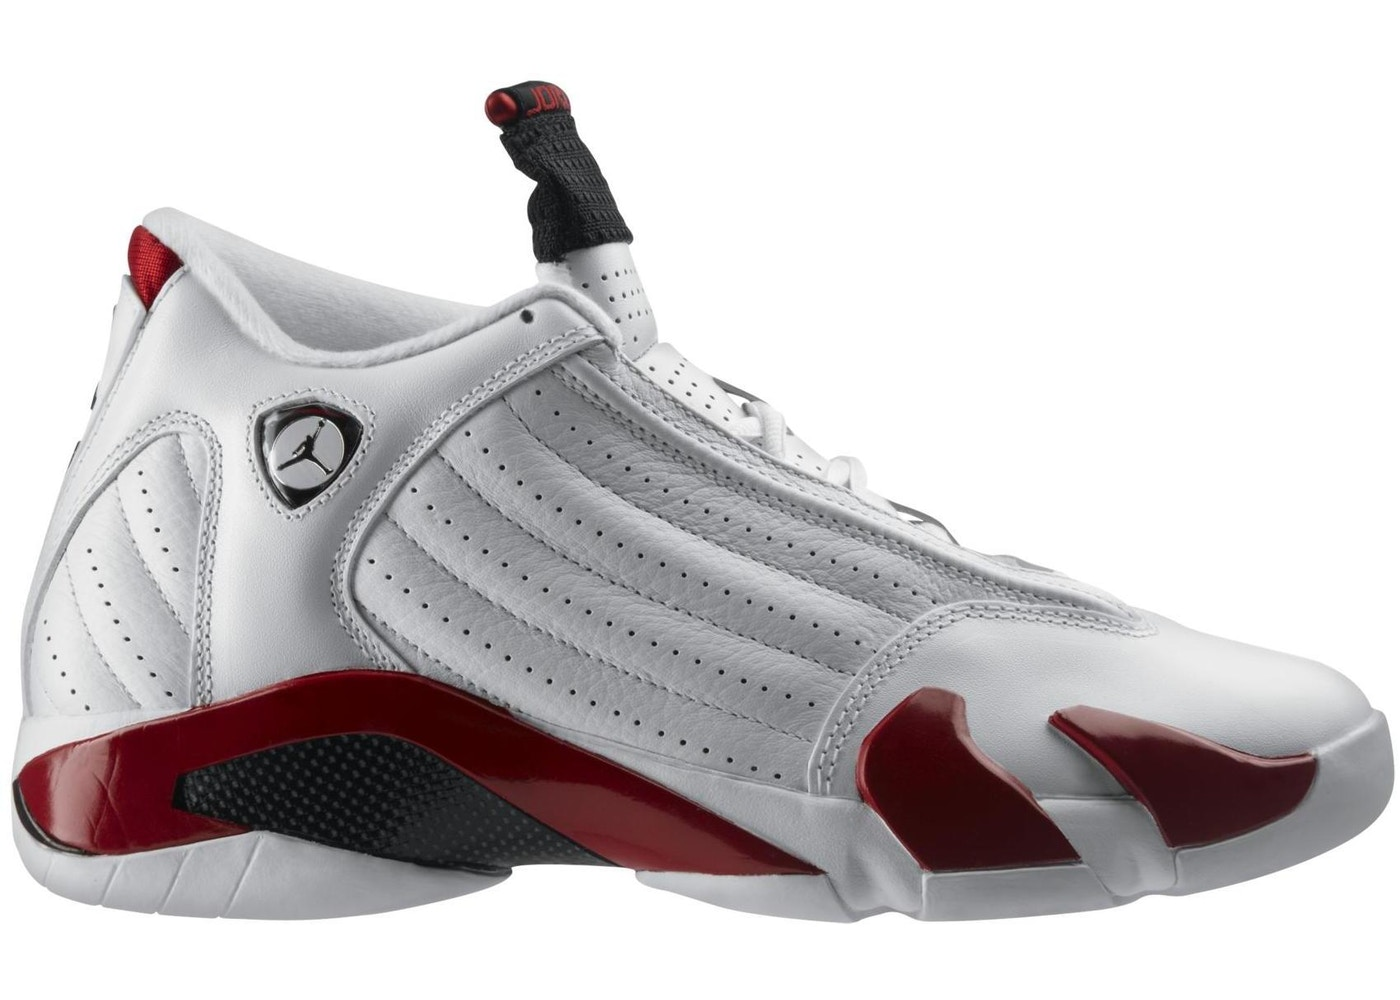 9a86cc12a692 Buy Air Jordan 14 Size 16 Shoes   Deadstock Sneakers